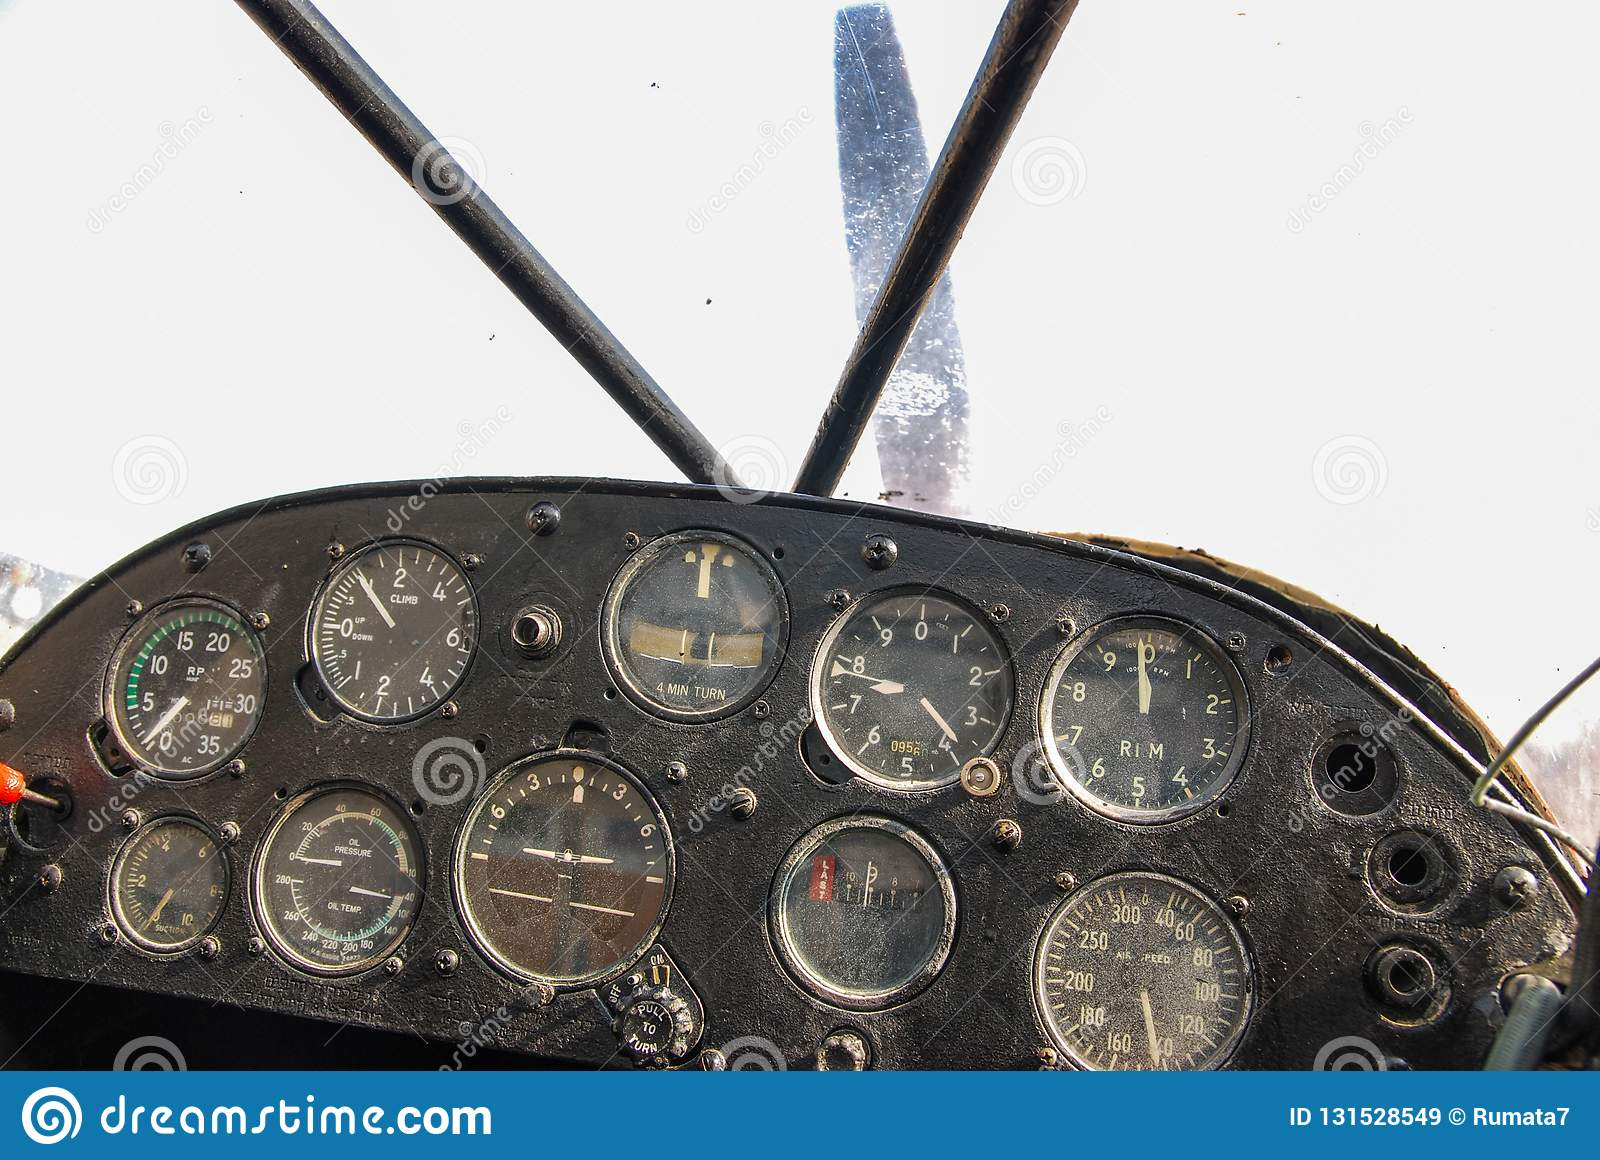 Flight Deck Dashboard Of An Vintage Propeller Airplane Stock